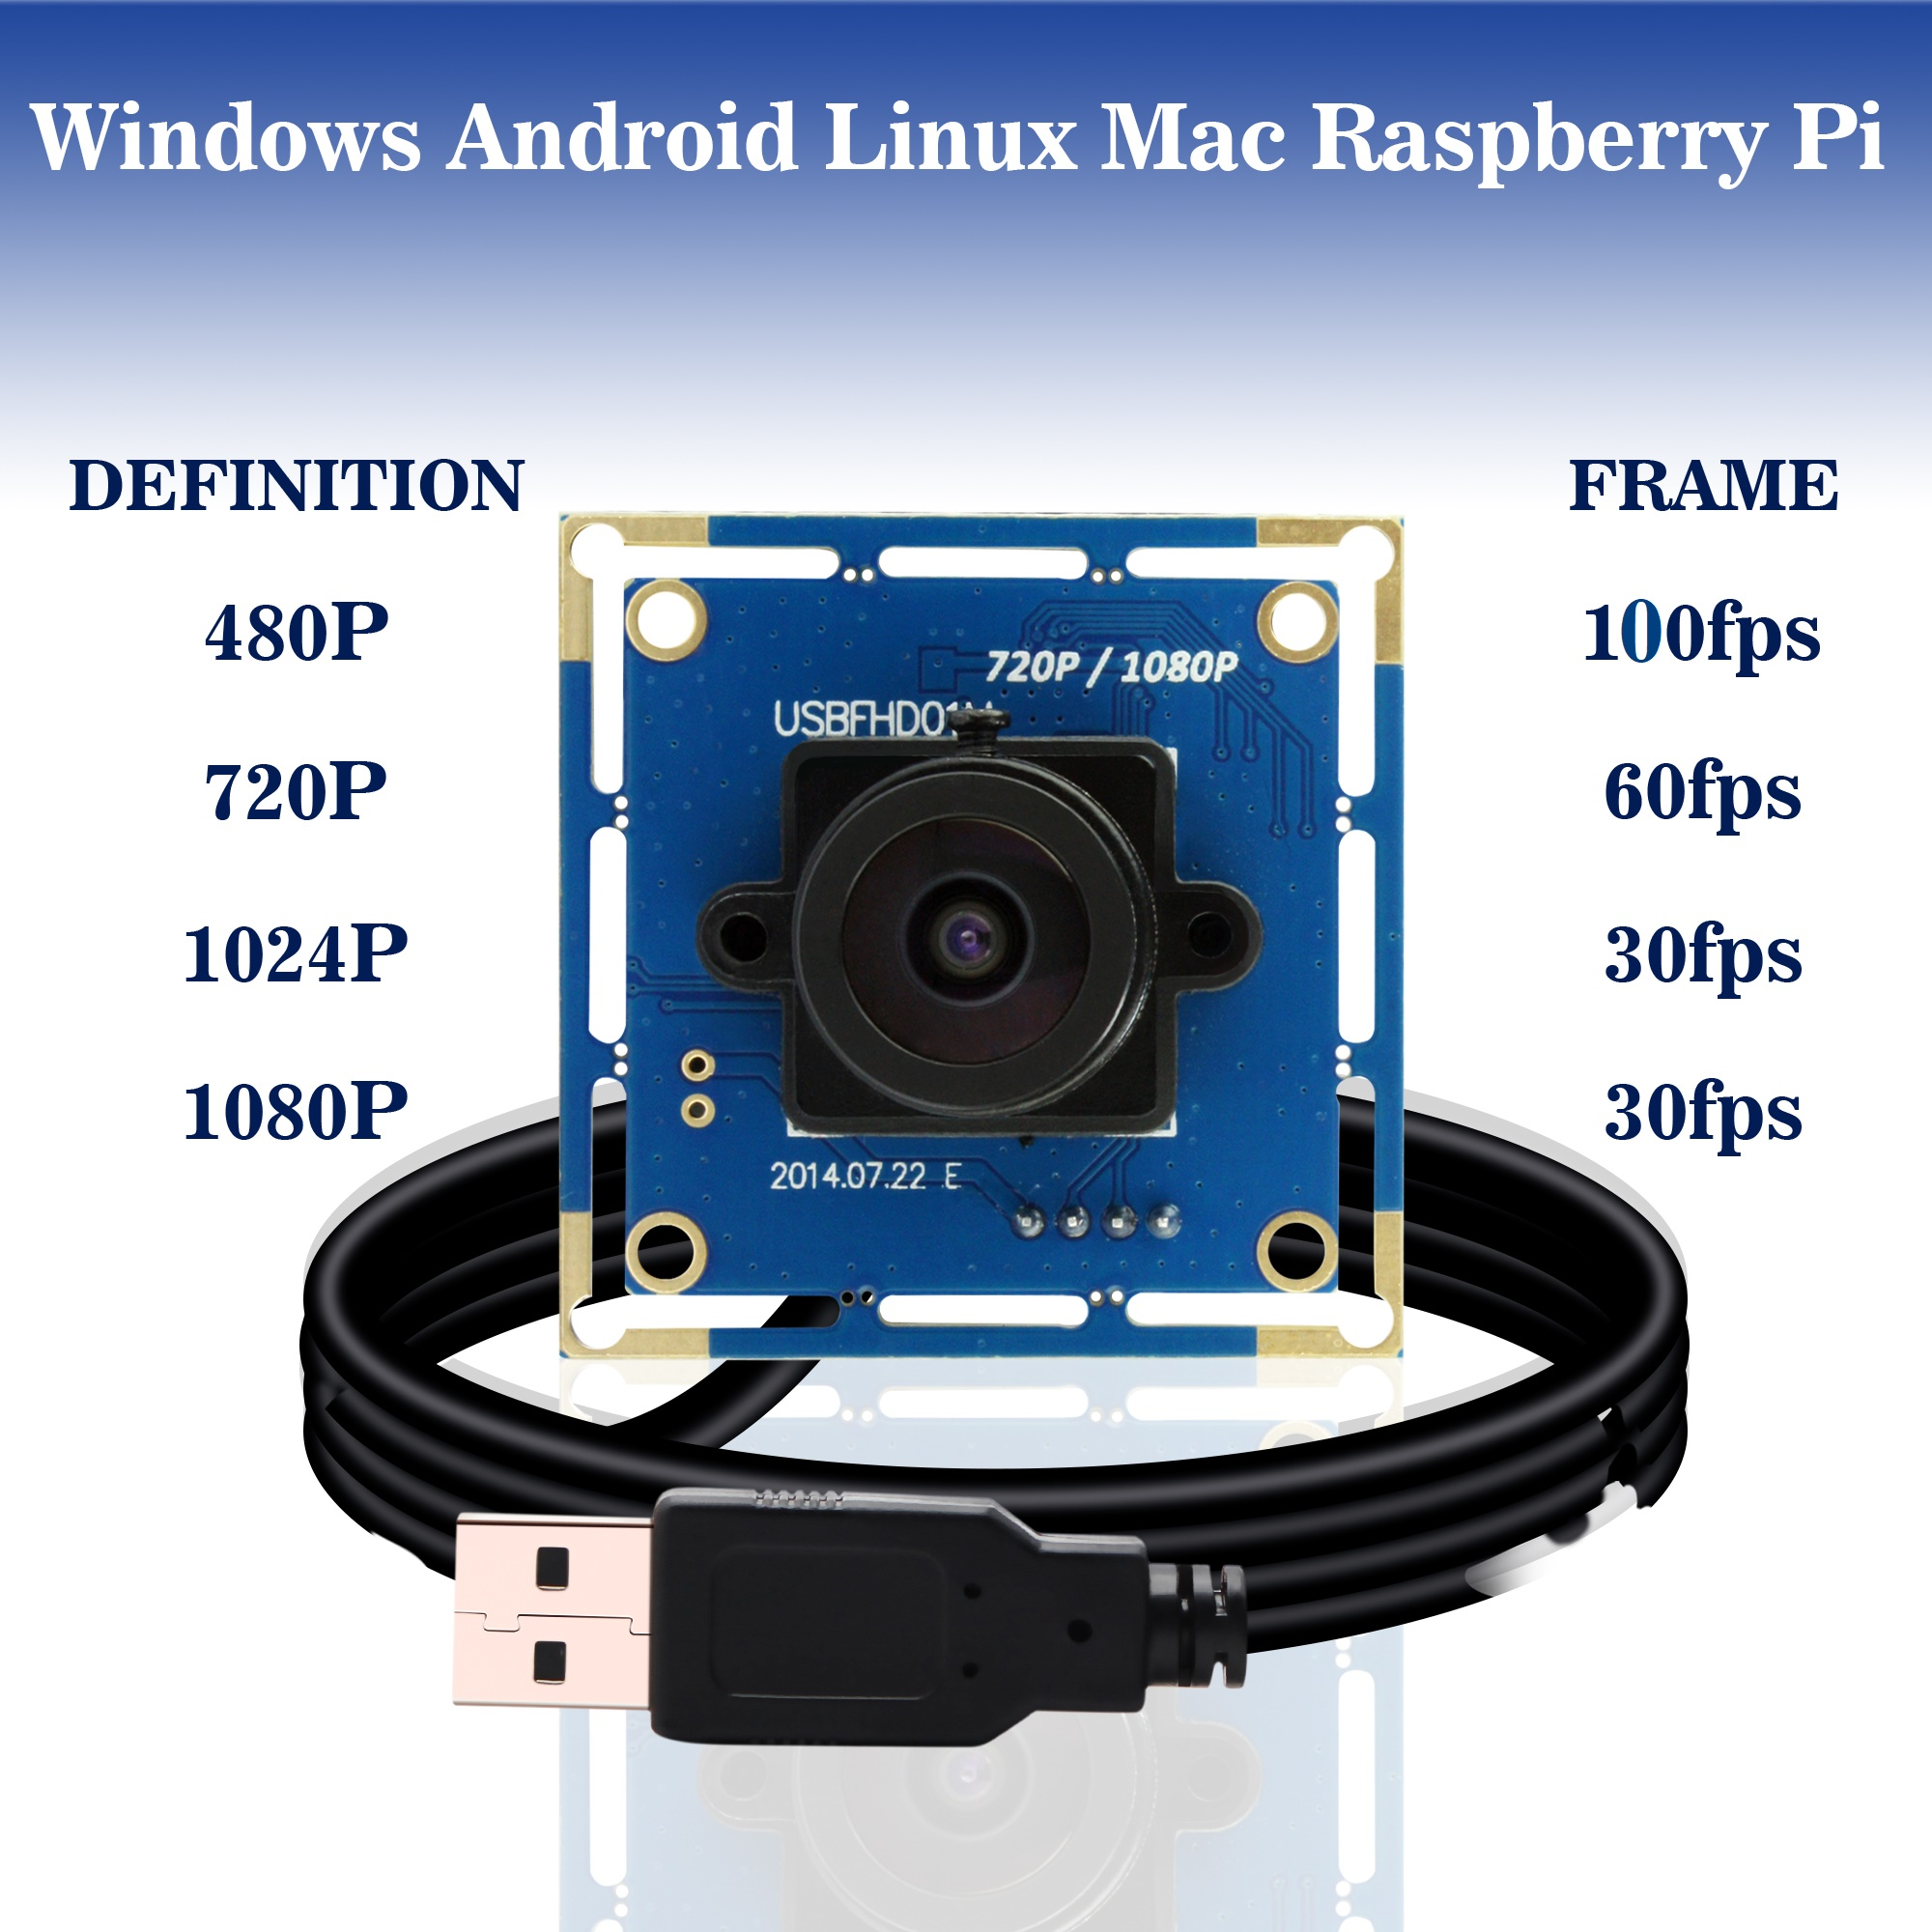 1080p Full HD MJPEG 30fps / 60fps / 100fps High Speed ​​CMOS OV2710 Groothoek Mini CCTV Android Linux UVC Webcam Usb Camera Module